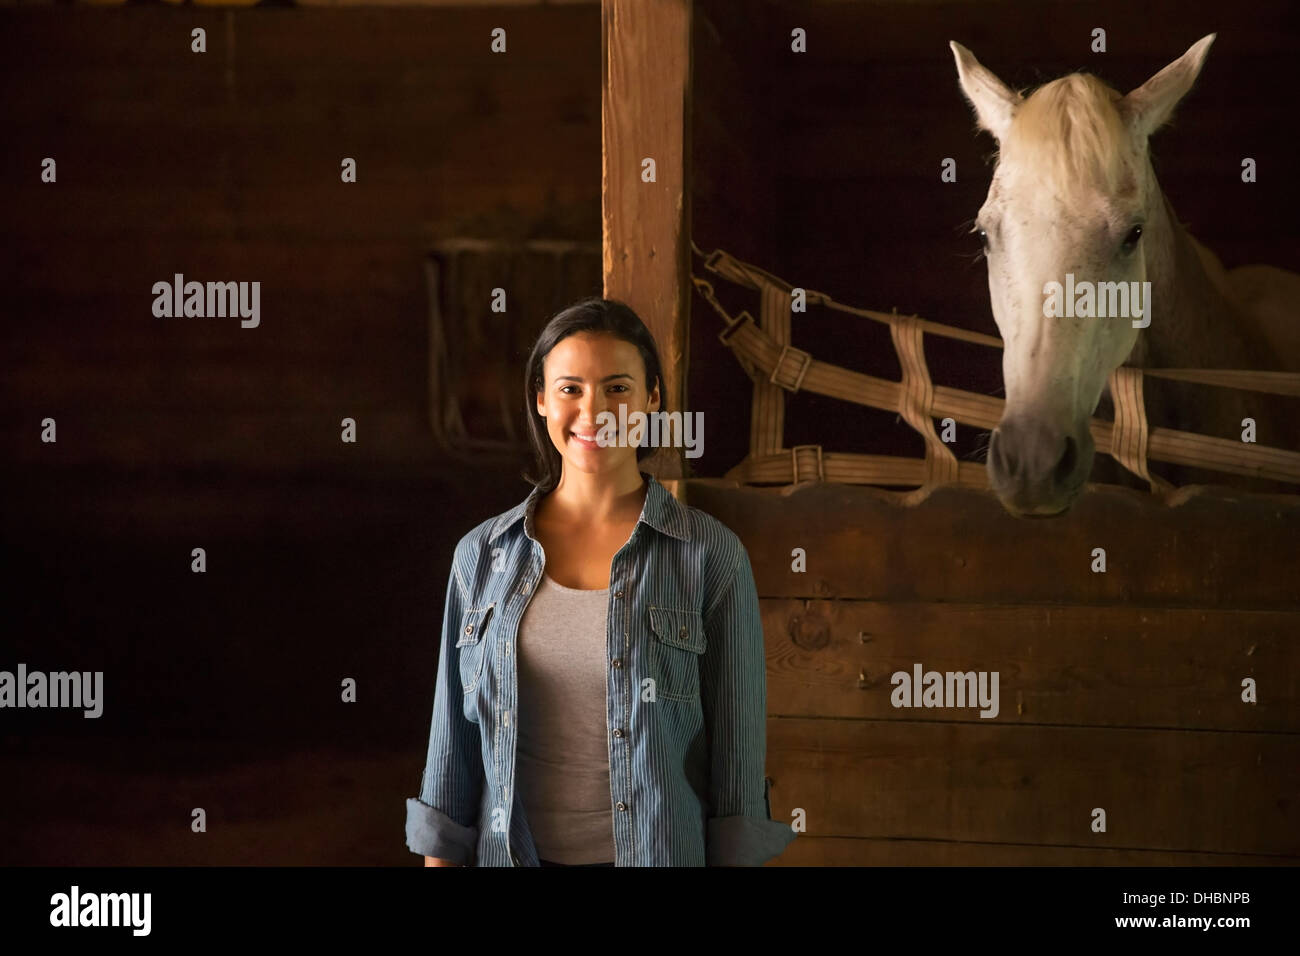 An organic farm in the Catskills. A woman standing in a stable, with a white horse looking over the stall. - Stock Image